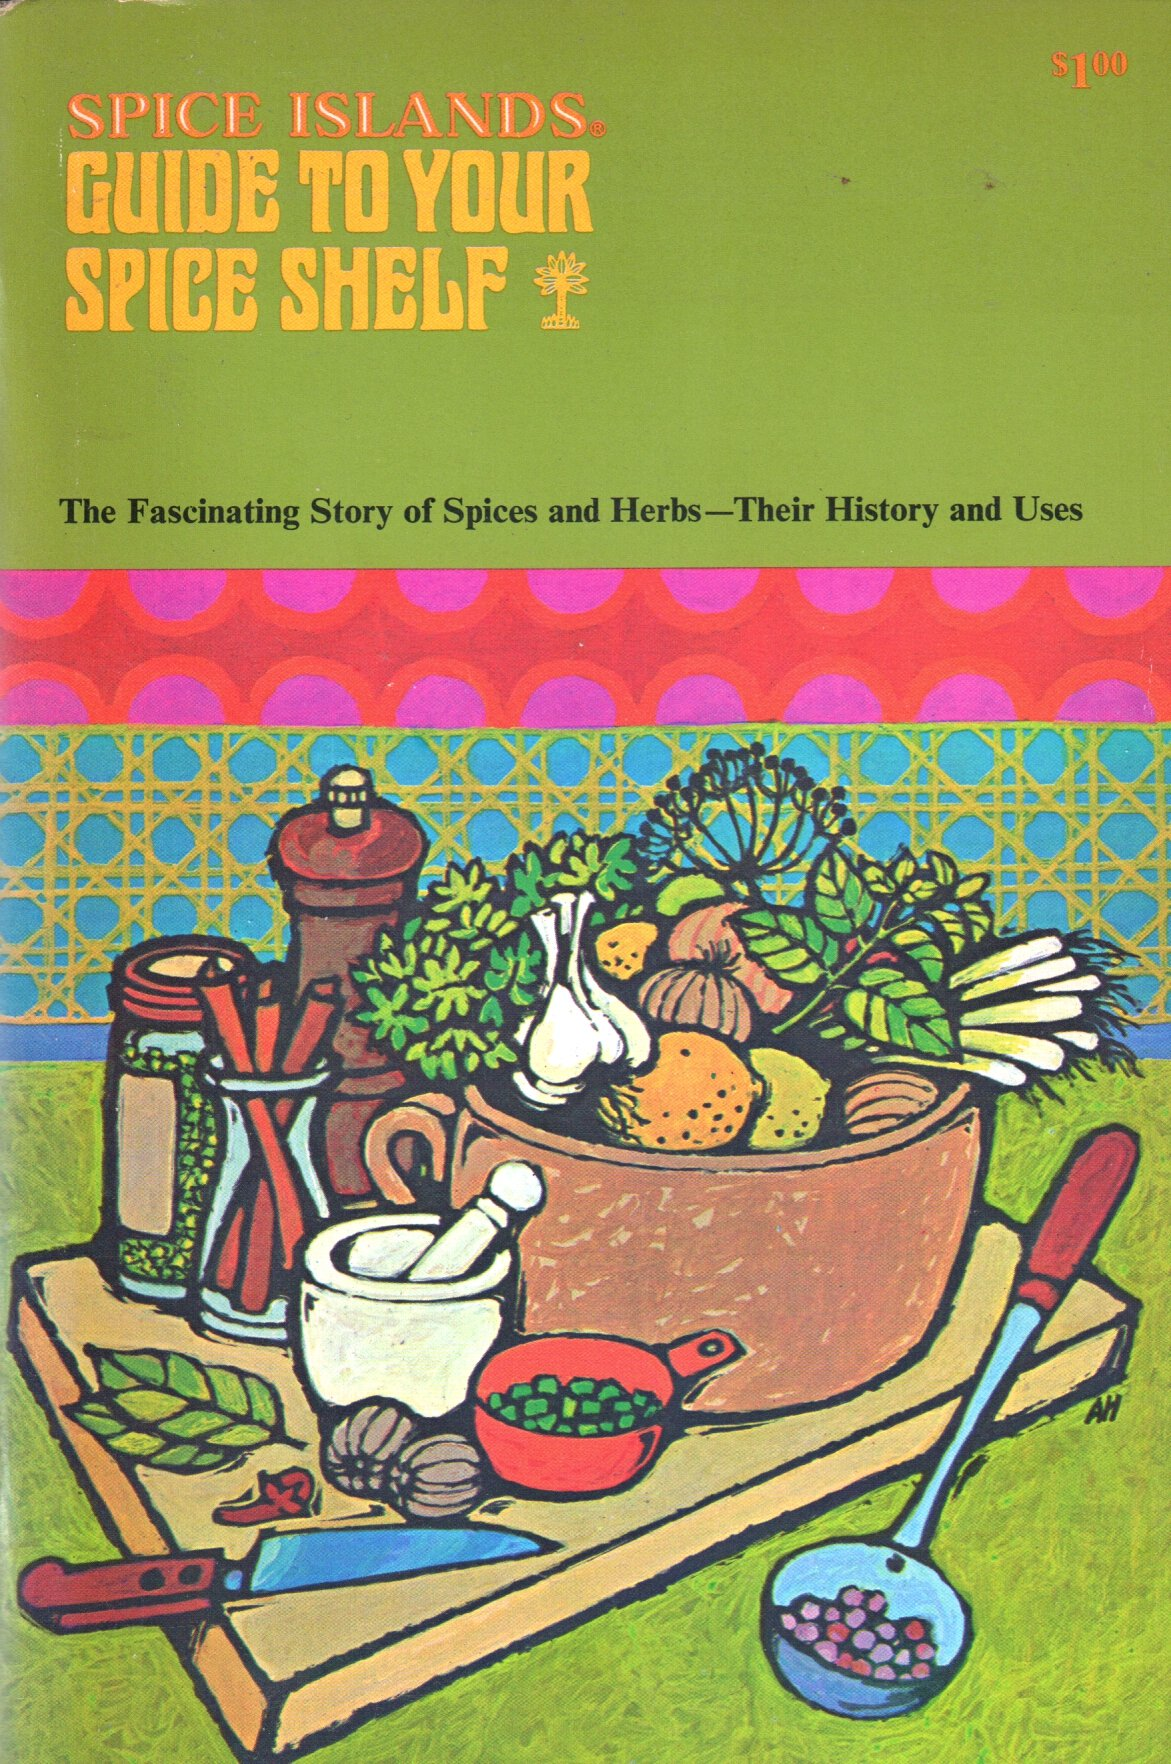 Spice Islands guide to your spice shelf: The fascinating